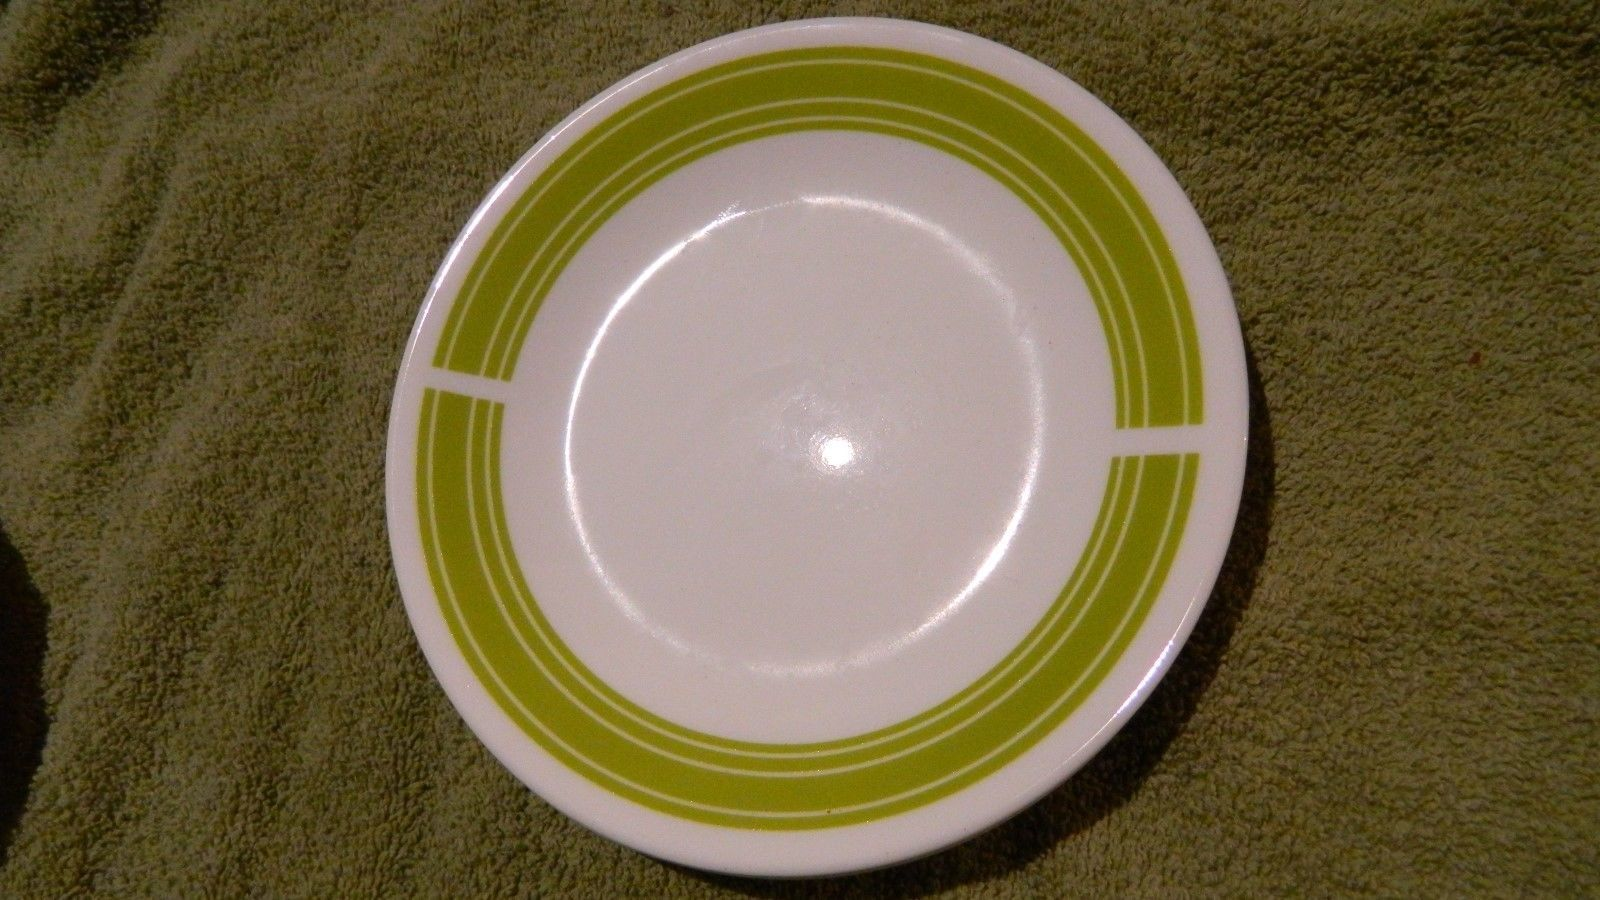 Primary image for CORELLE MEMORY LANE BREAD / DESSERT PLATES 6.75 INCH x 4 NEW FREE USA SHIPPING